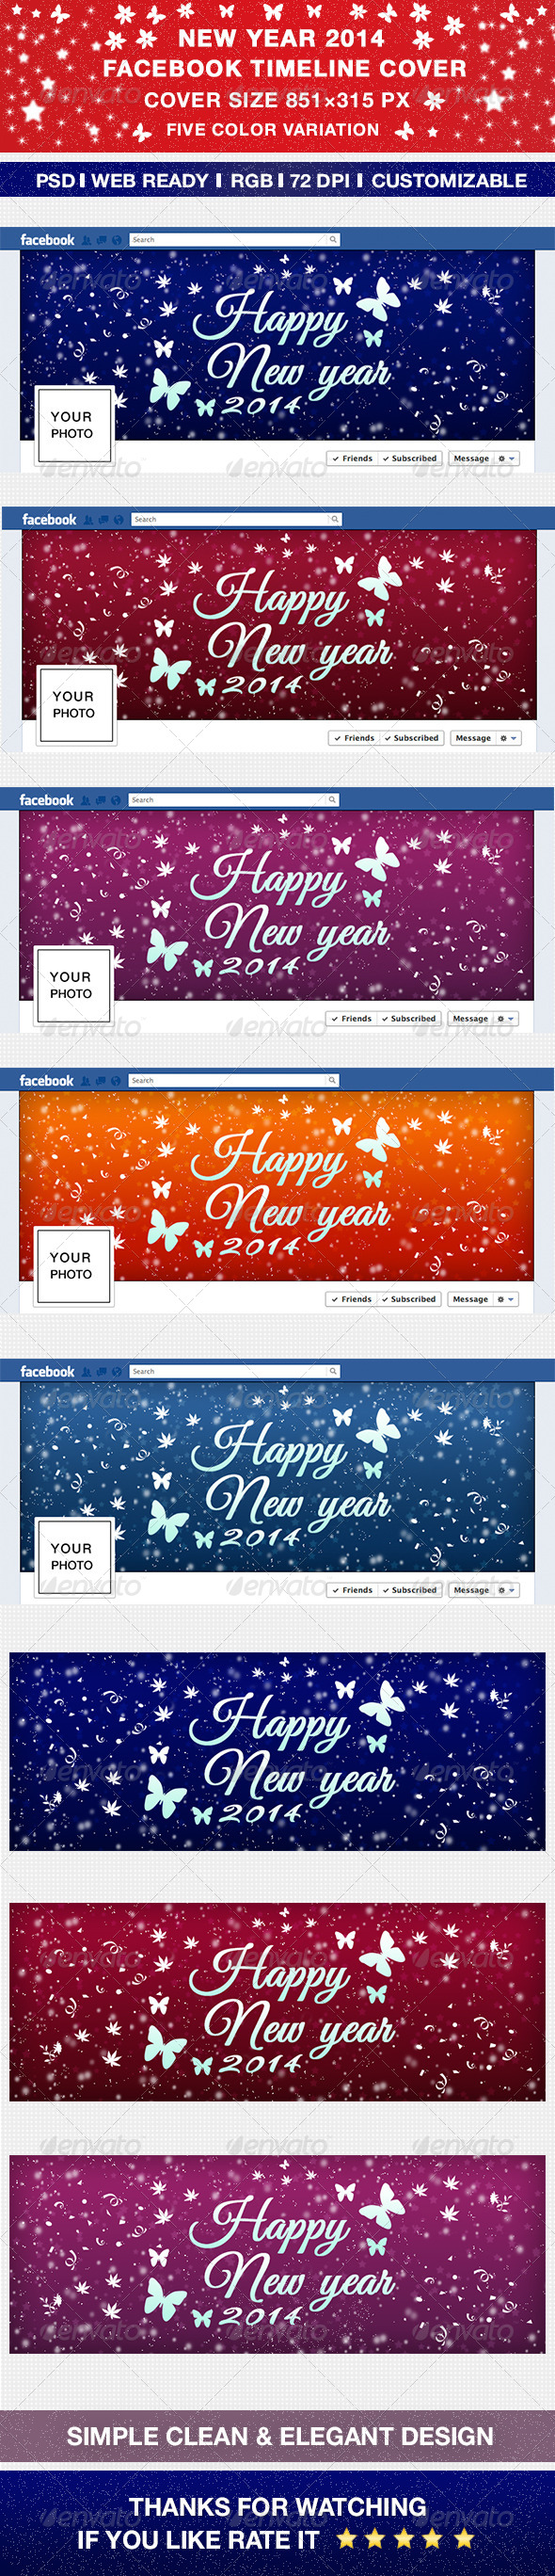 GraphicRiver New Year 2014 Facebook Timeline Cover 6489150